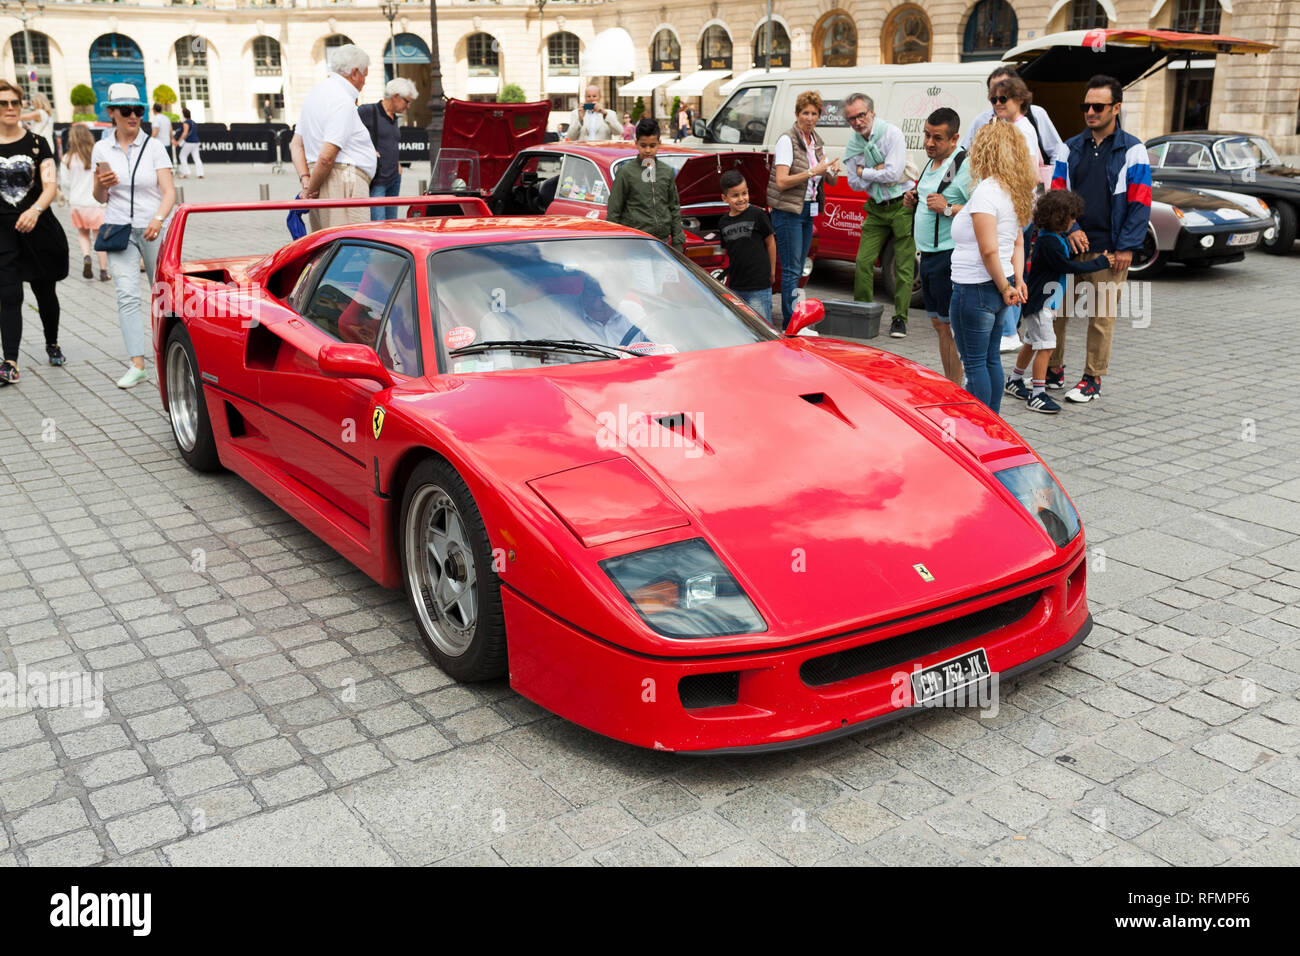 Paris, France 02 June 2018 classic vintage red Ferrari with driver behind the wheel at an exhibition of retro cars on the streets of Paris. - Stock Image